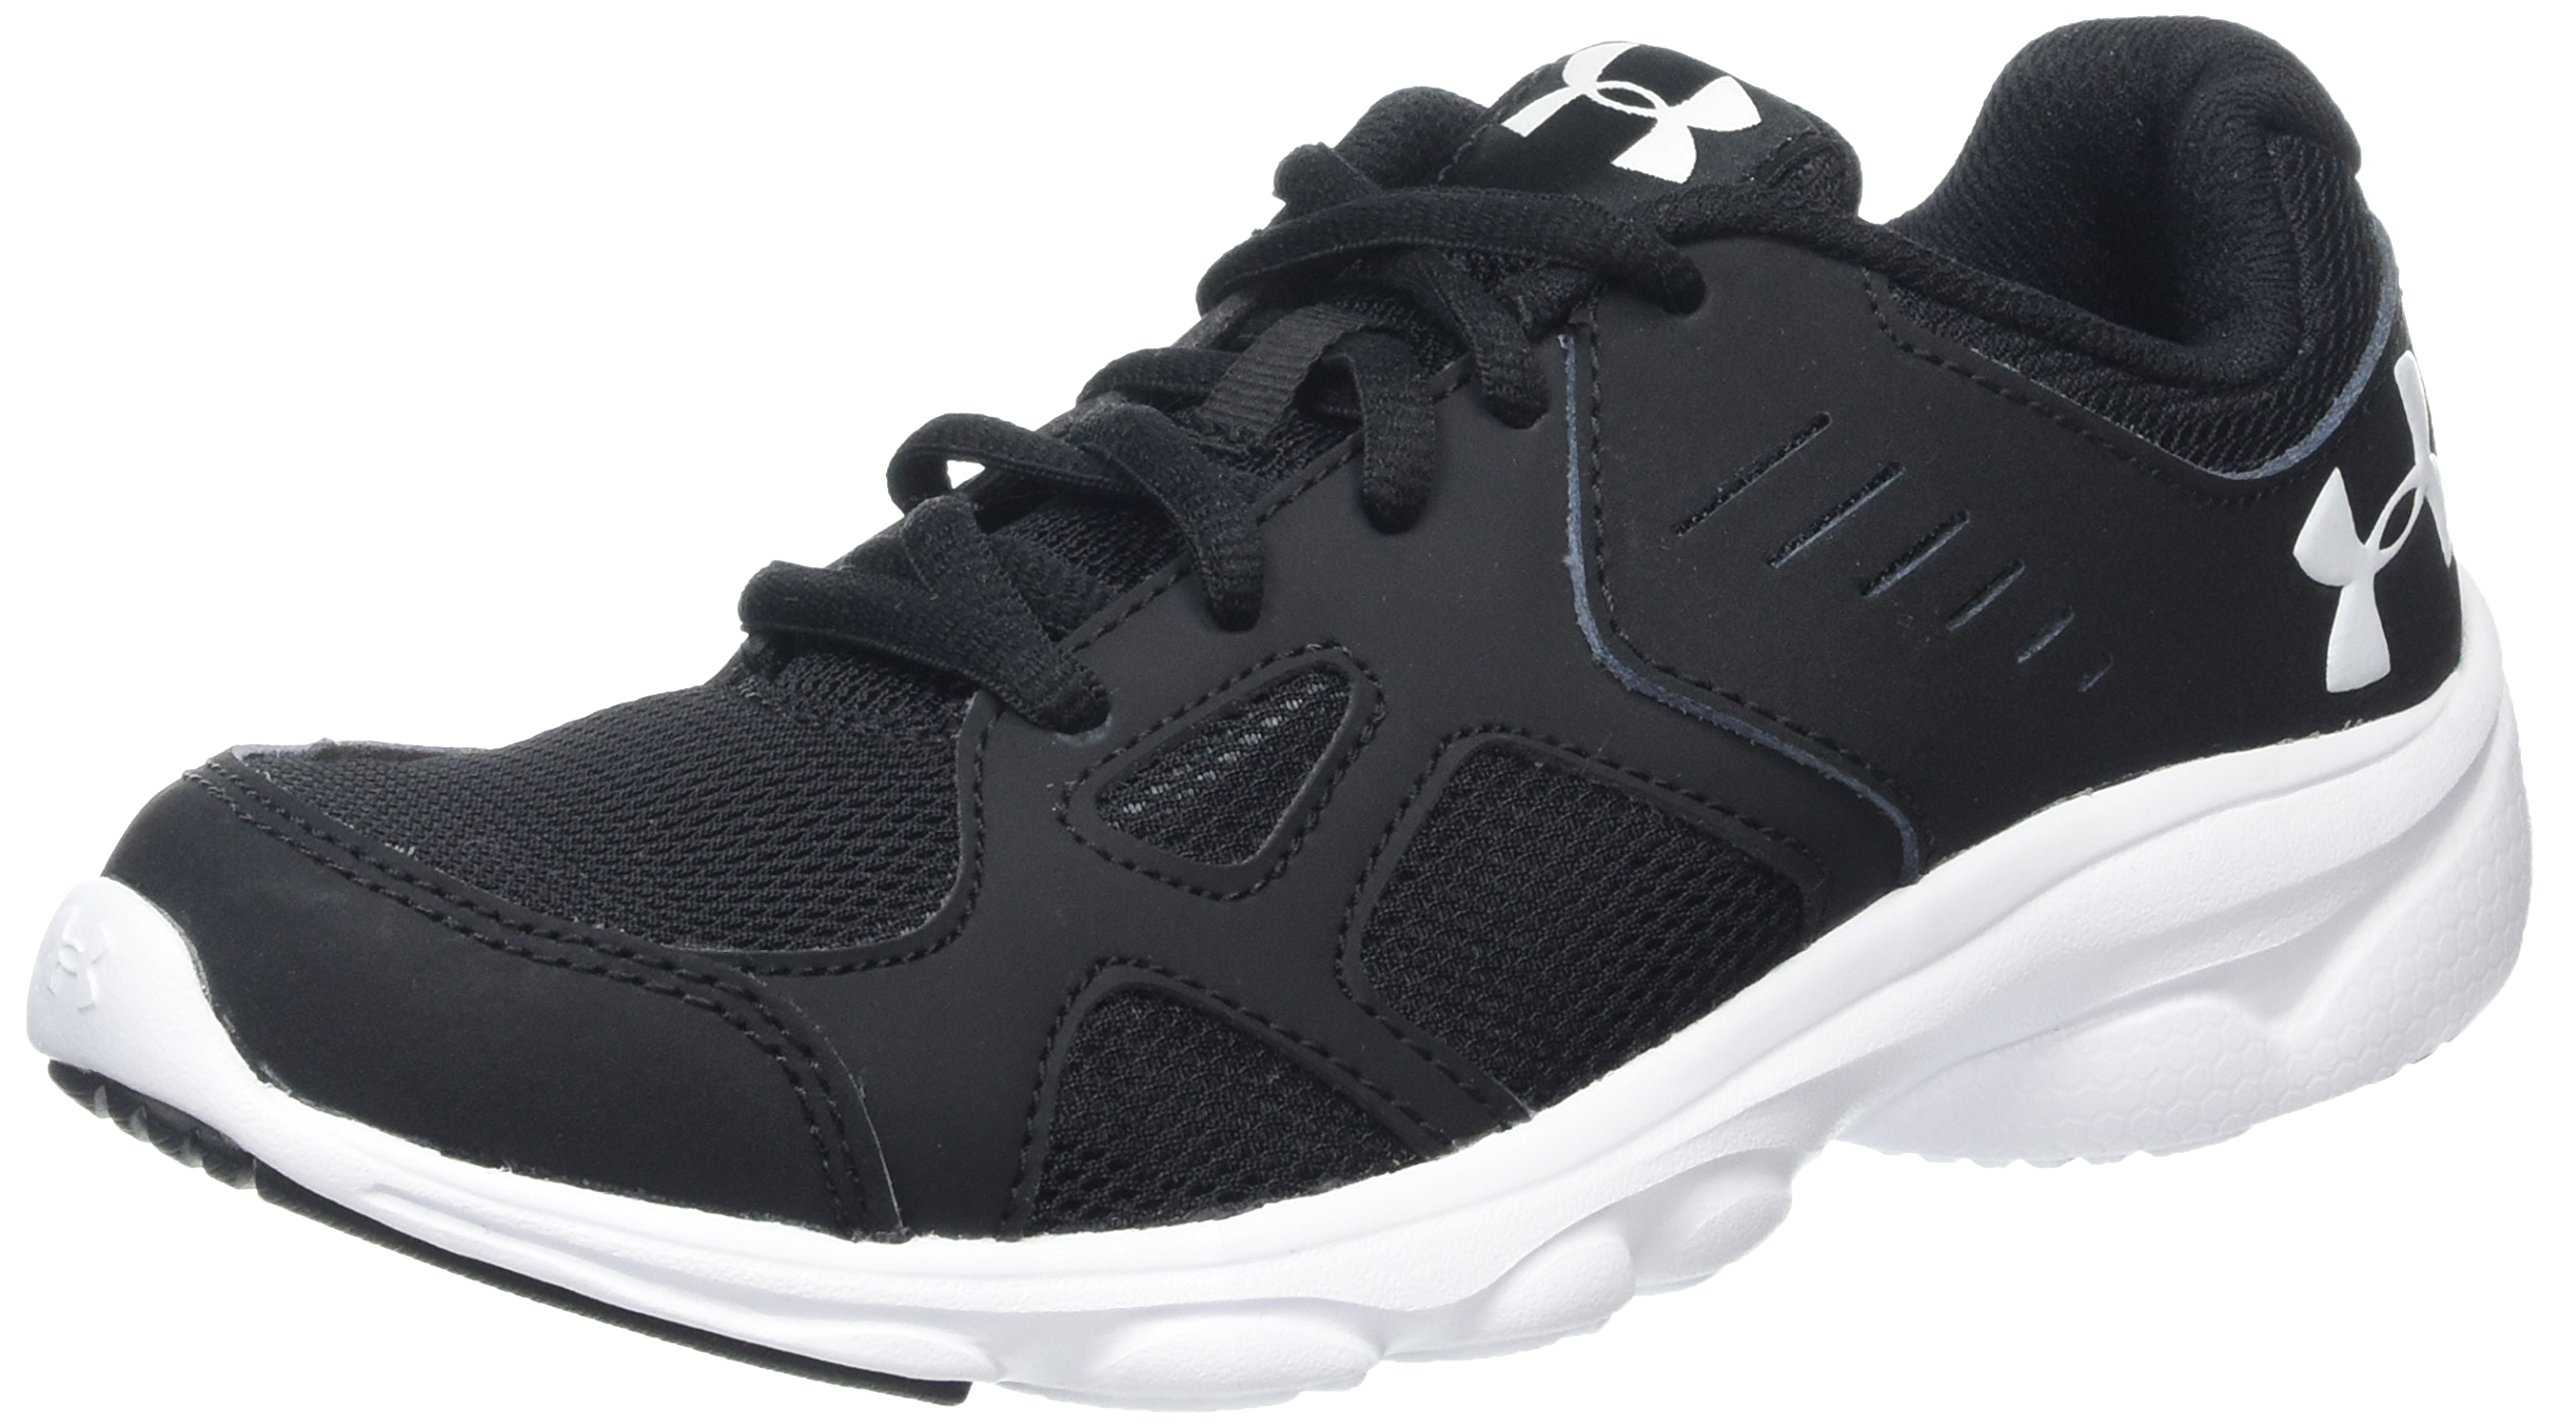 Under Armour Boys' Grade School Pace Sneaker, Black (001)/White, 5